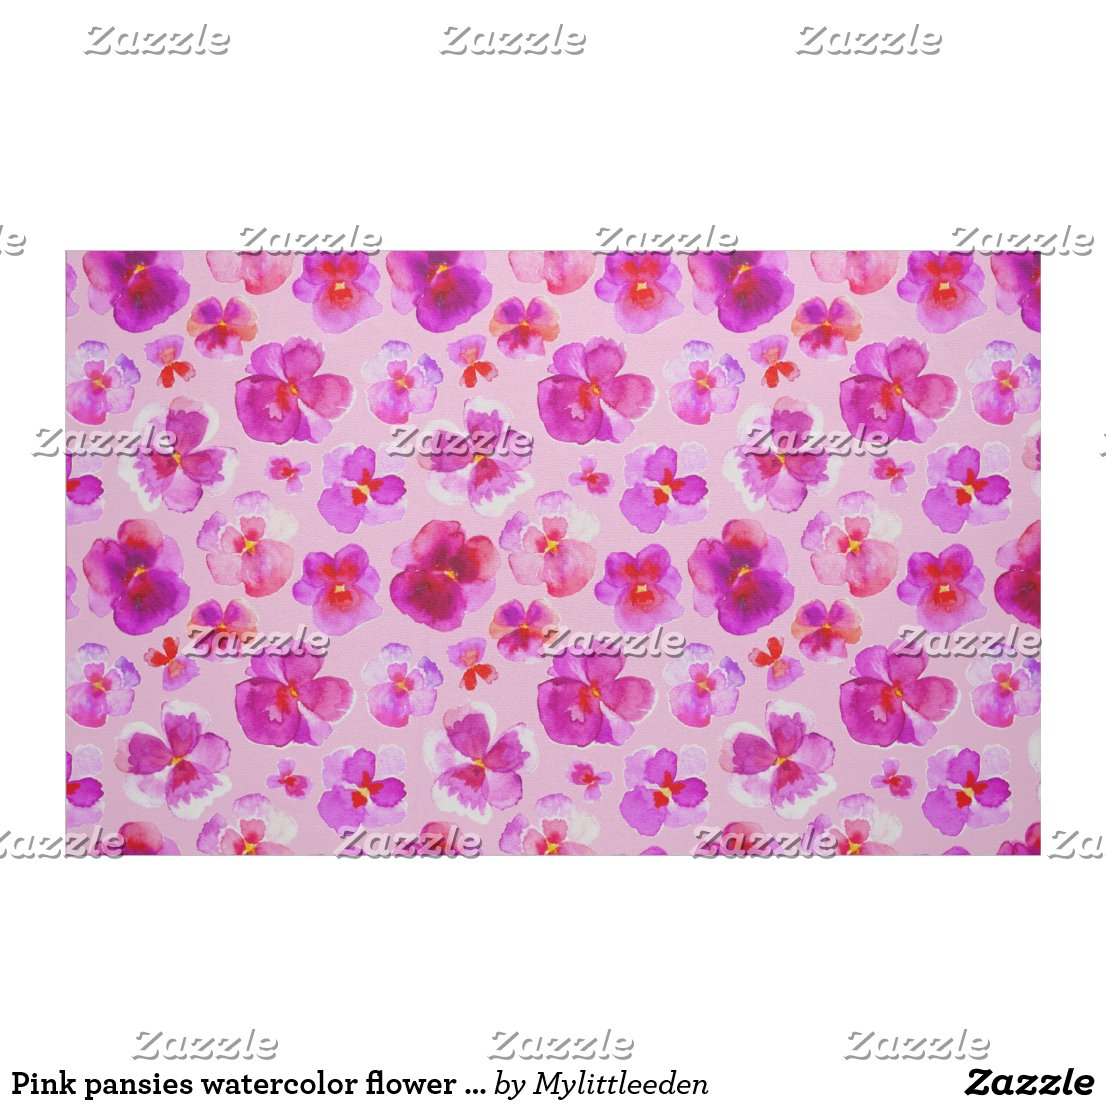 Pink pansies watercolor flower art fabric